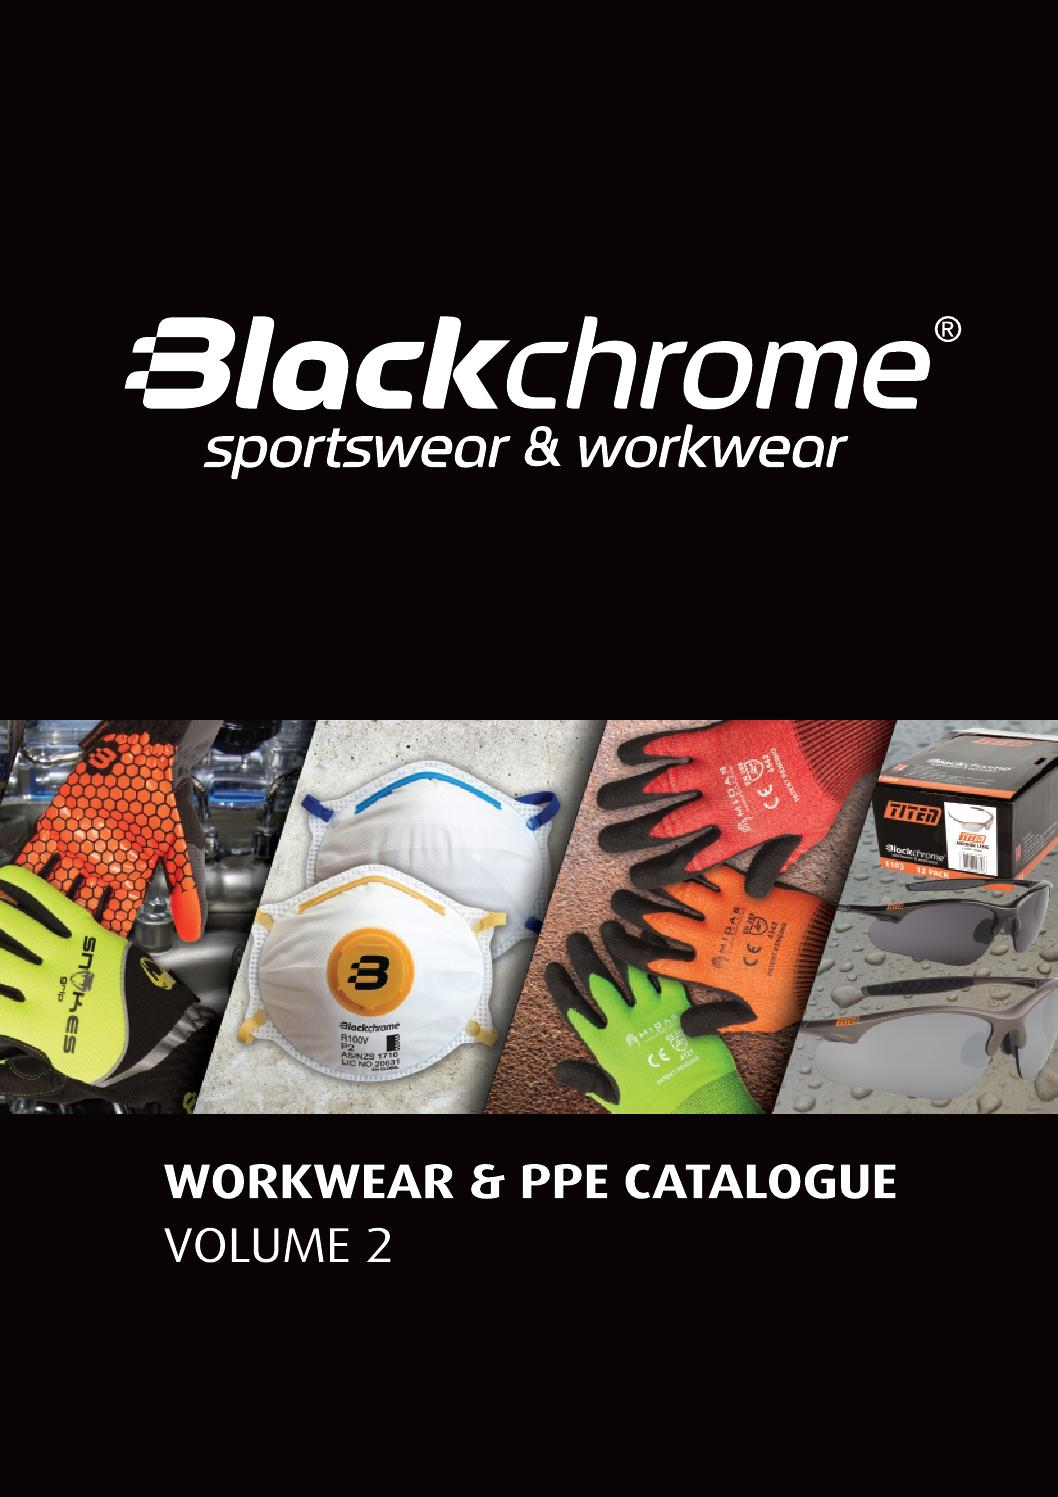 Blackchrome Workwear Amp Ppe Catalogue Volume 2 By